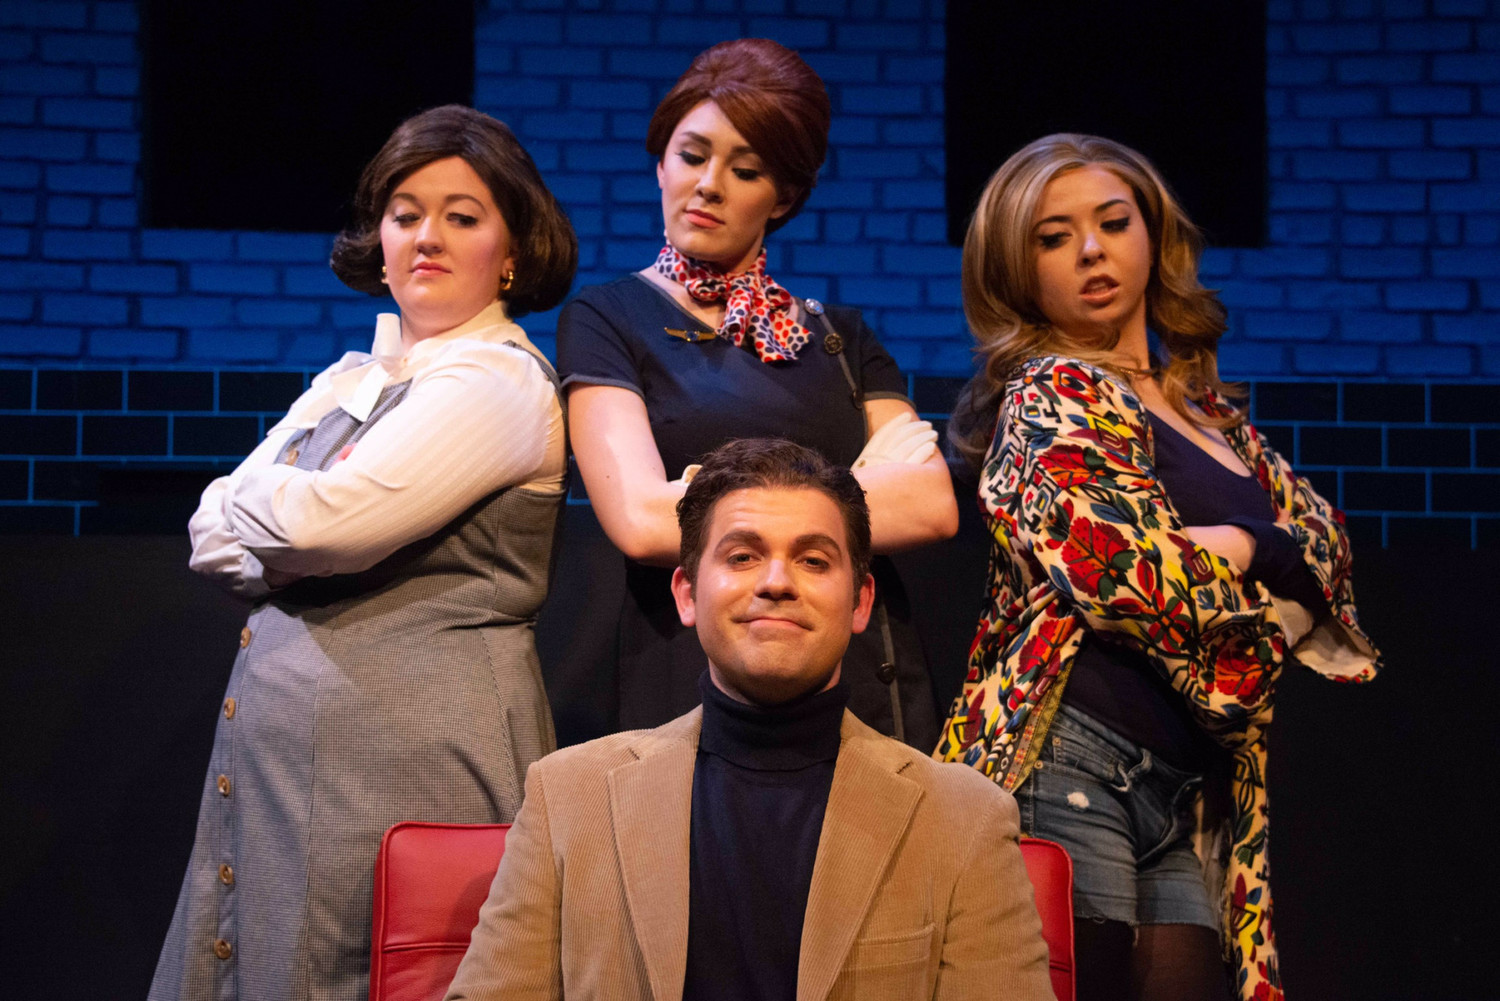 BWW Review: COMPANY at Avon Players Is a Thought-Provoking Exploration of Life and Love